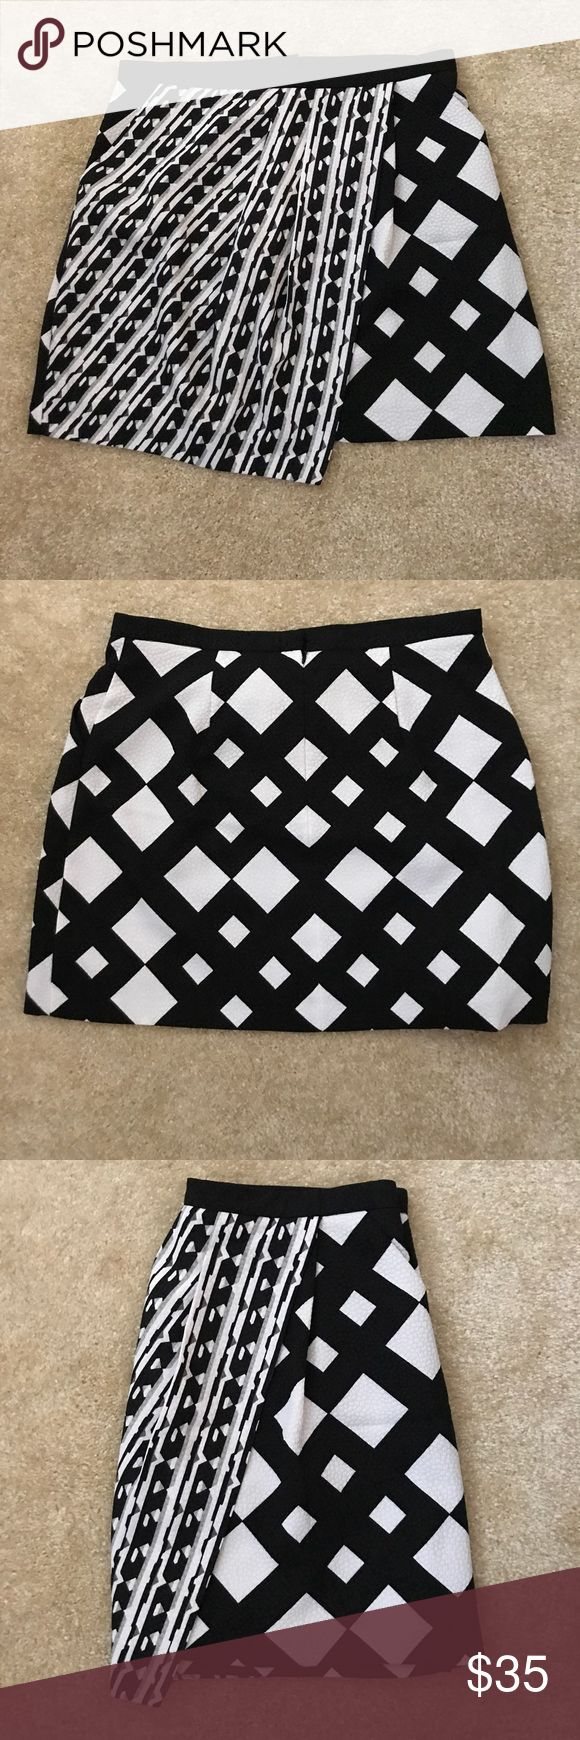 "NWOT Peter Pilotto for Target Aztec Print Skirt BRAND NEW WITHOUT TAGS, LIMITED EDITION Peter Pilotto for Target Aztec Print Skirt - Has pockets on both sides and a zipper with hook & eye closure in the back. Size 14.  34"" Waist 19"" Length (Waistband to Hem) Peter Pilotto for Target Skirts Mini"